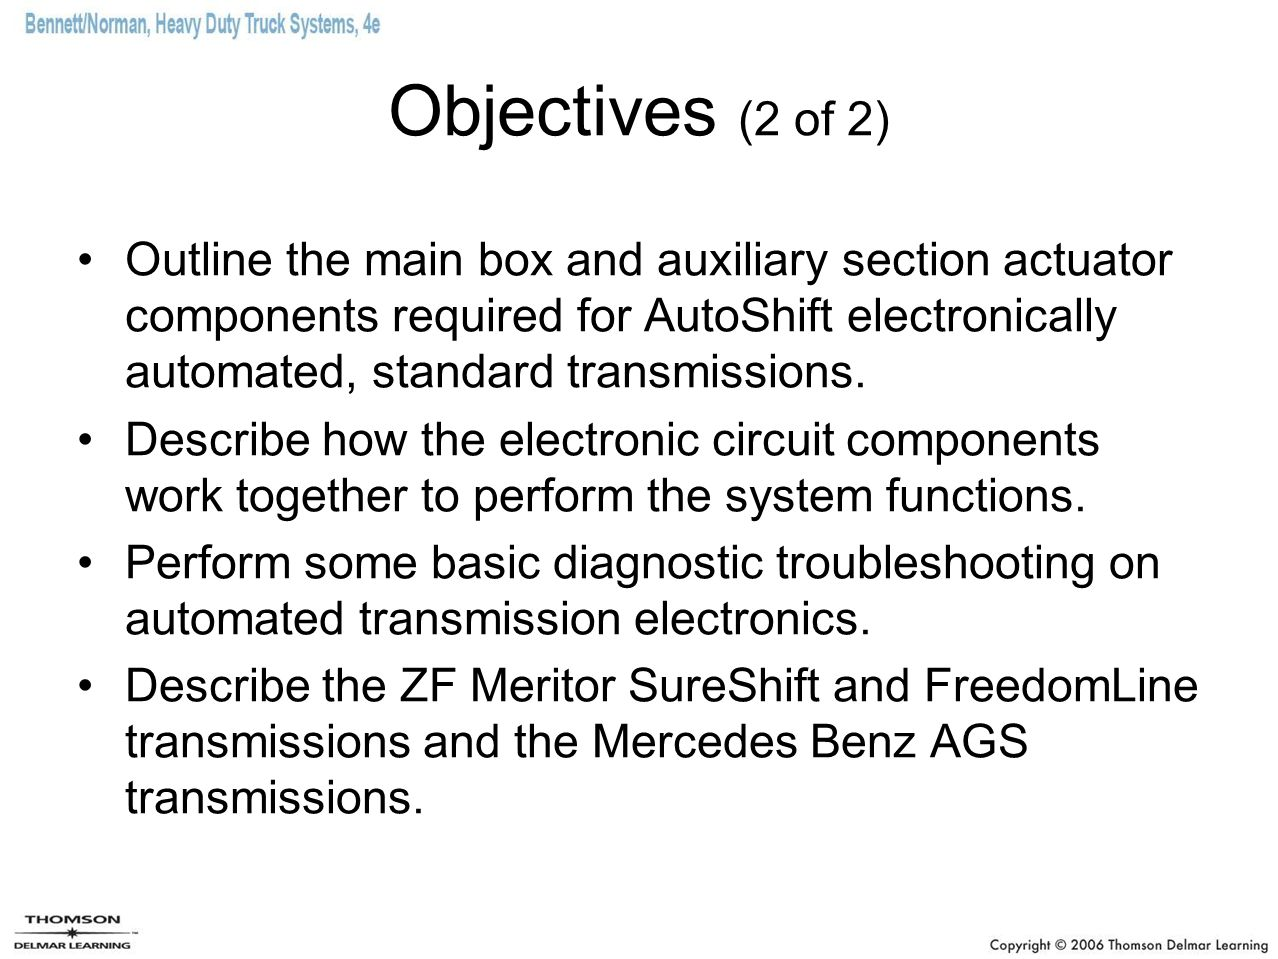 Objectives (2 of 2)